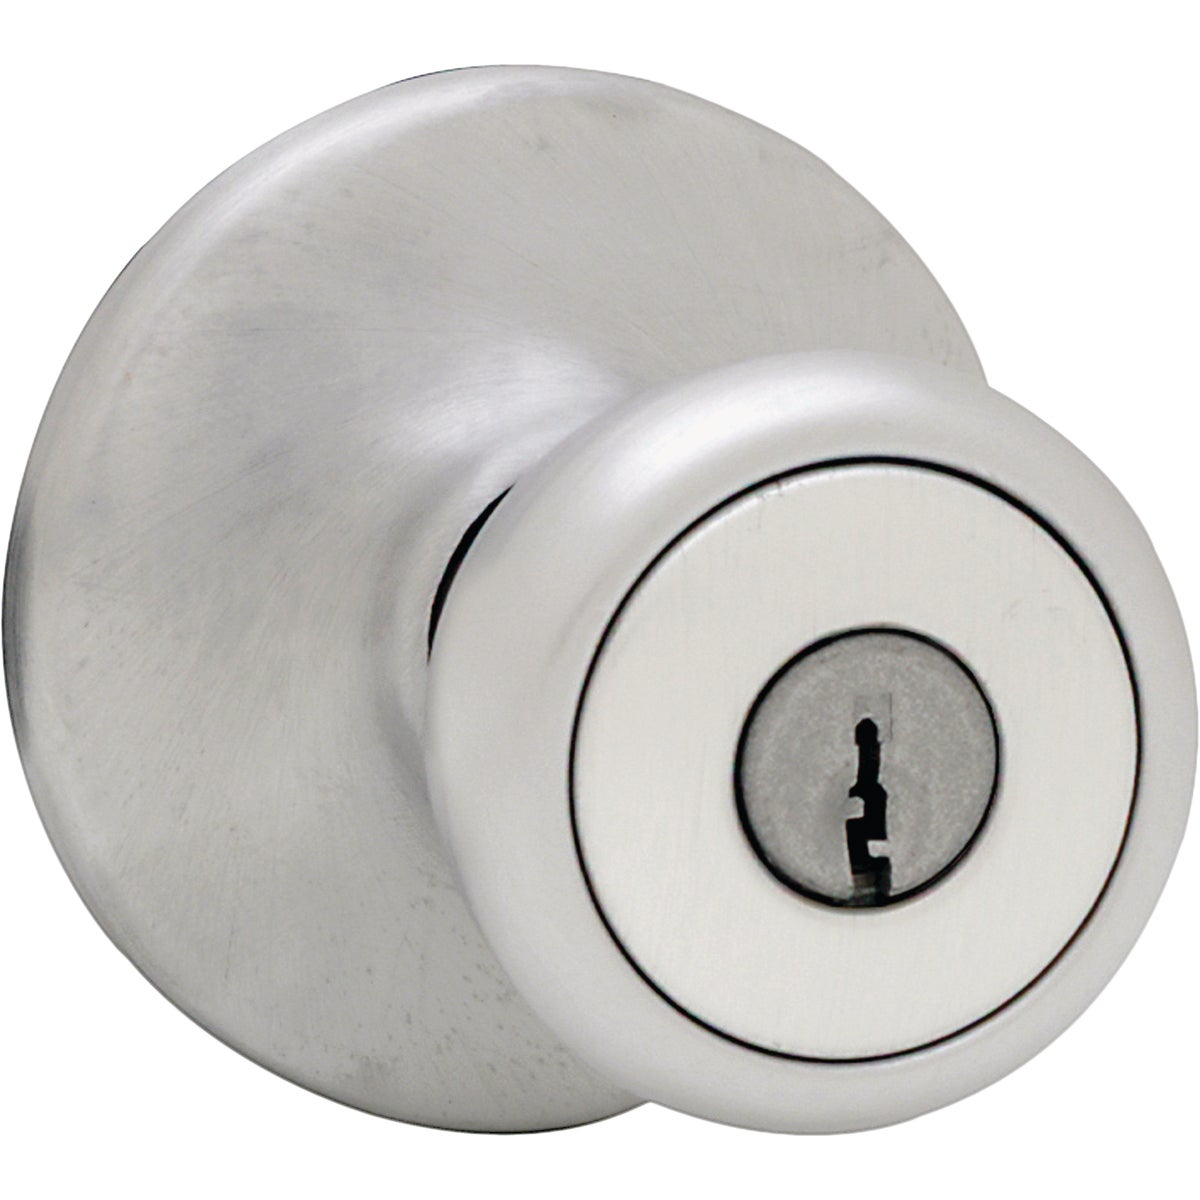 SC MOBILE HOME ENT LOCK - 400M 26D CP K6 by Kwikset